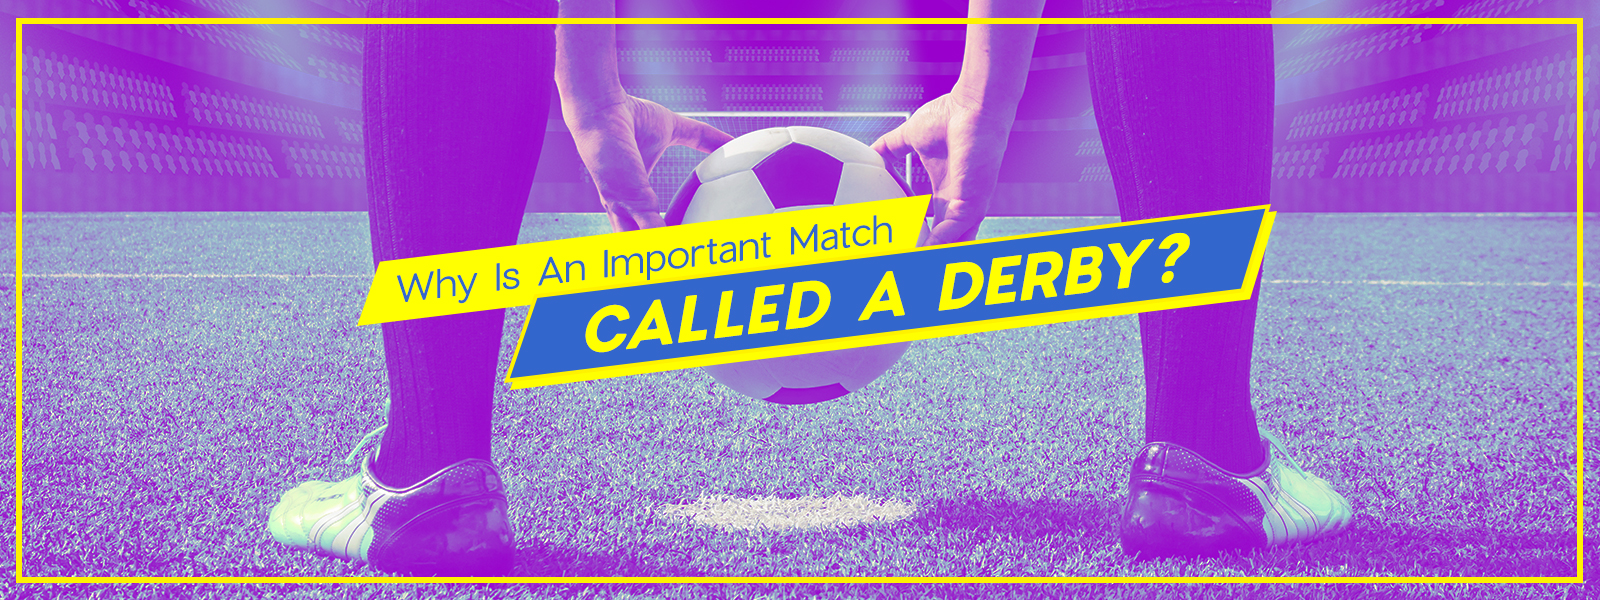 Why Is An Important Match Called A Derby?